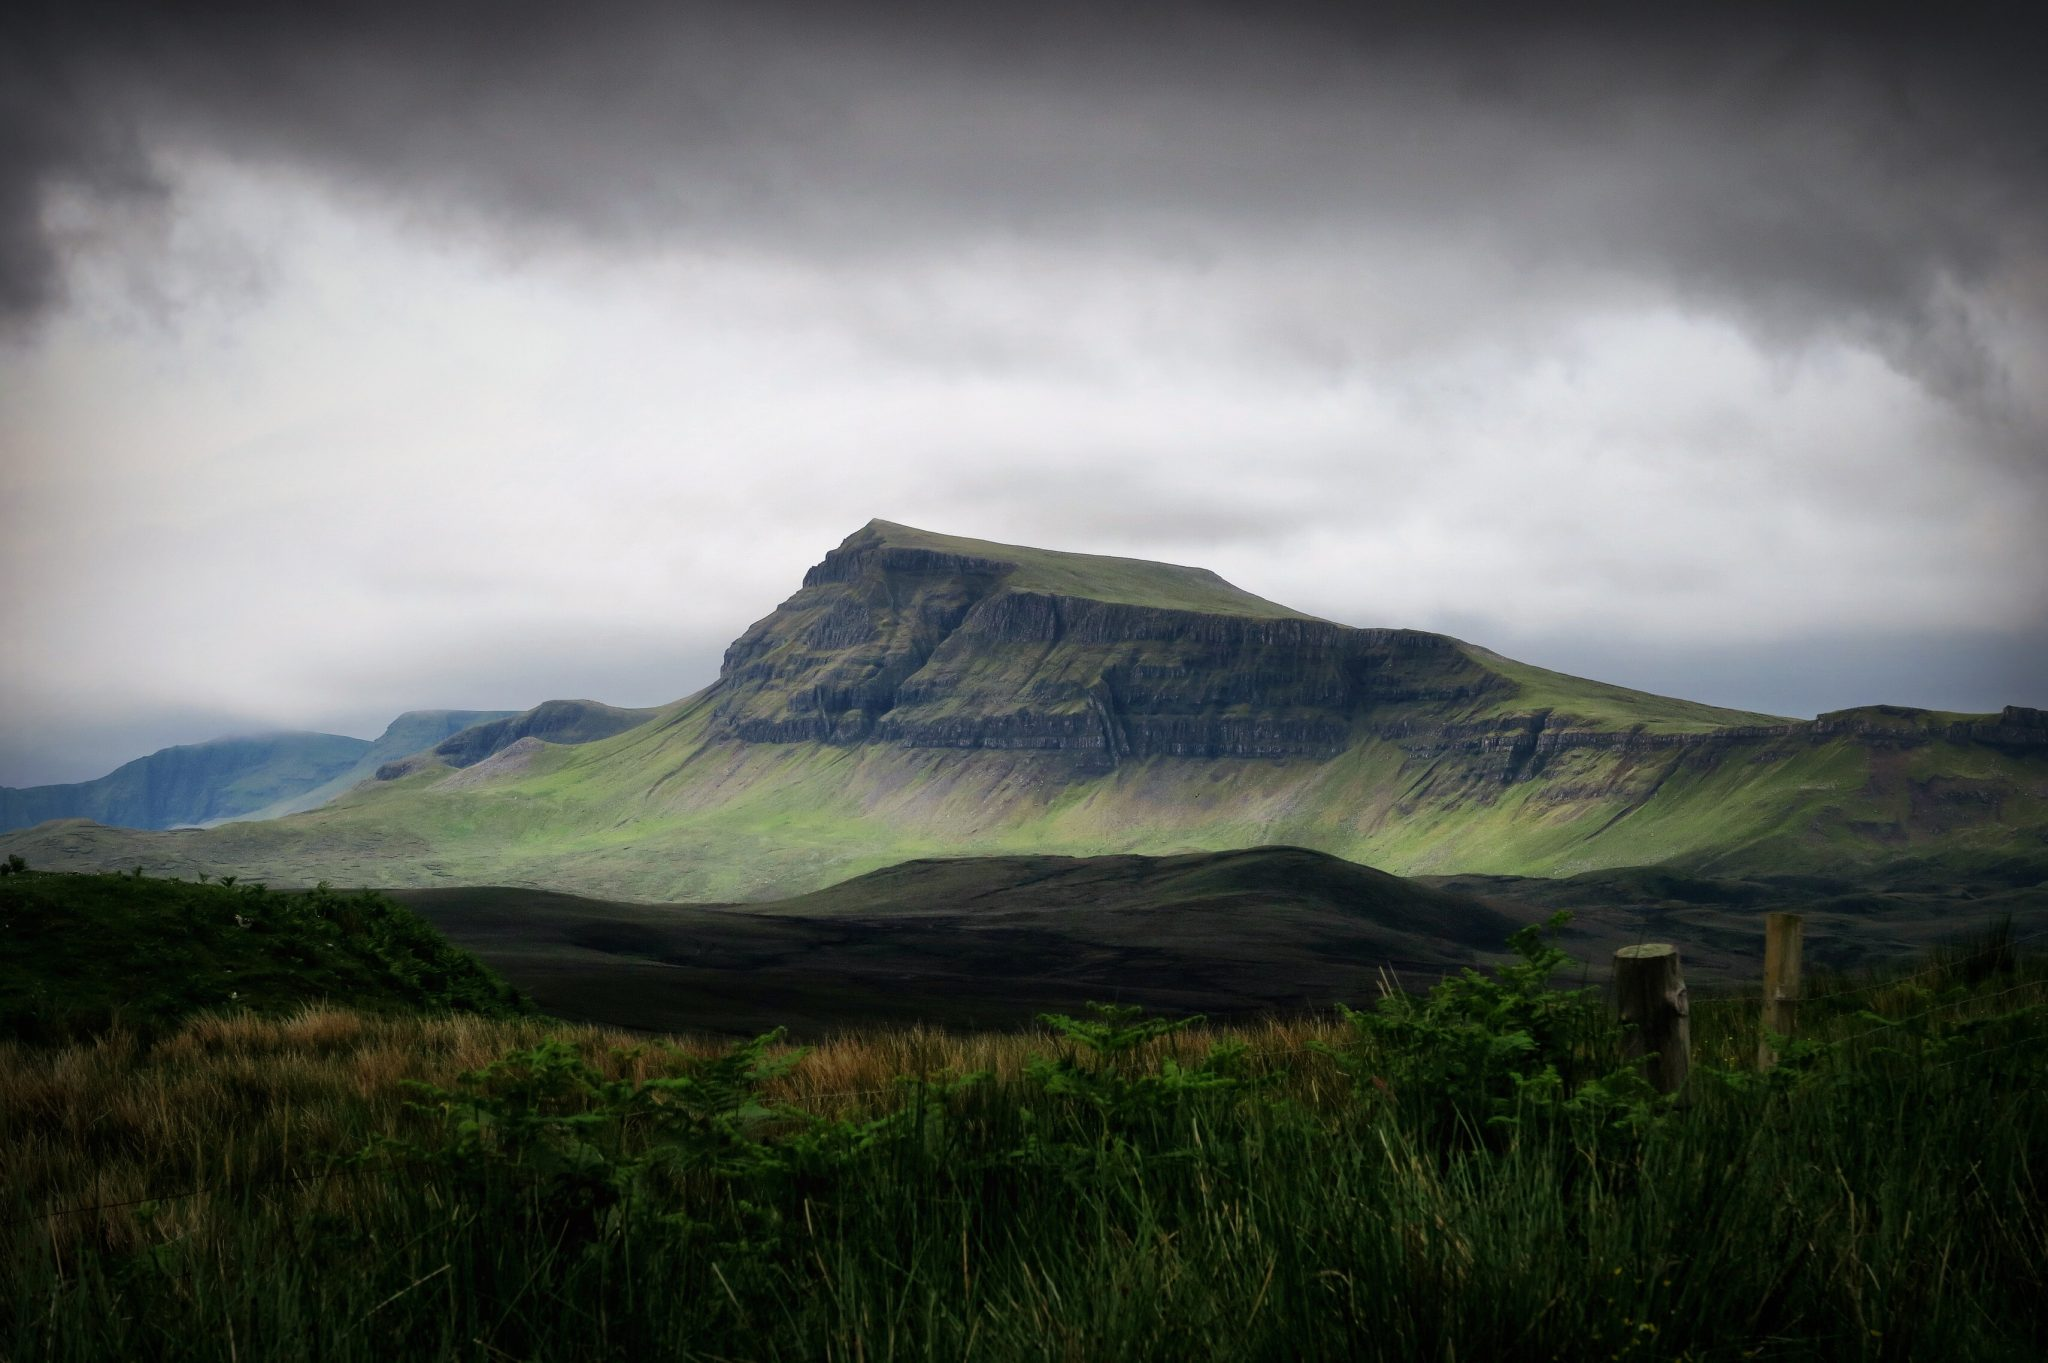 A photograpth of The Quiraing, Portree, UK